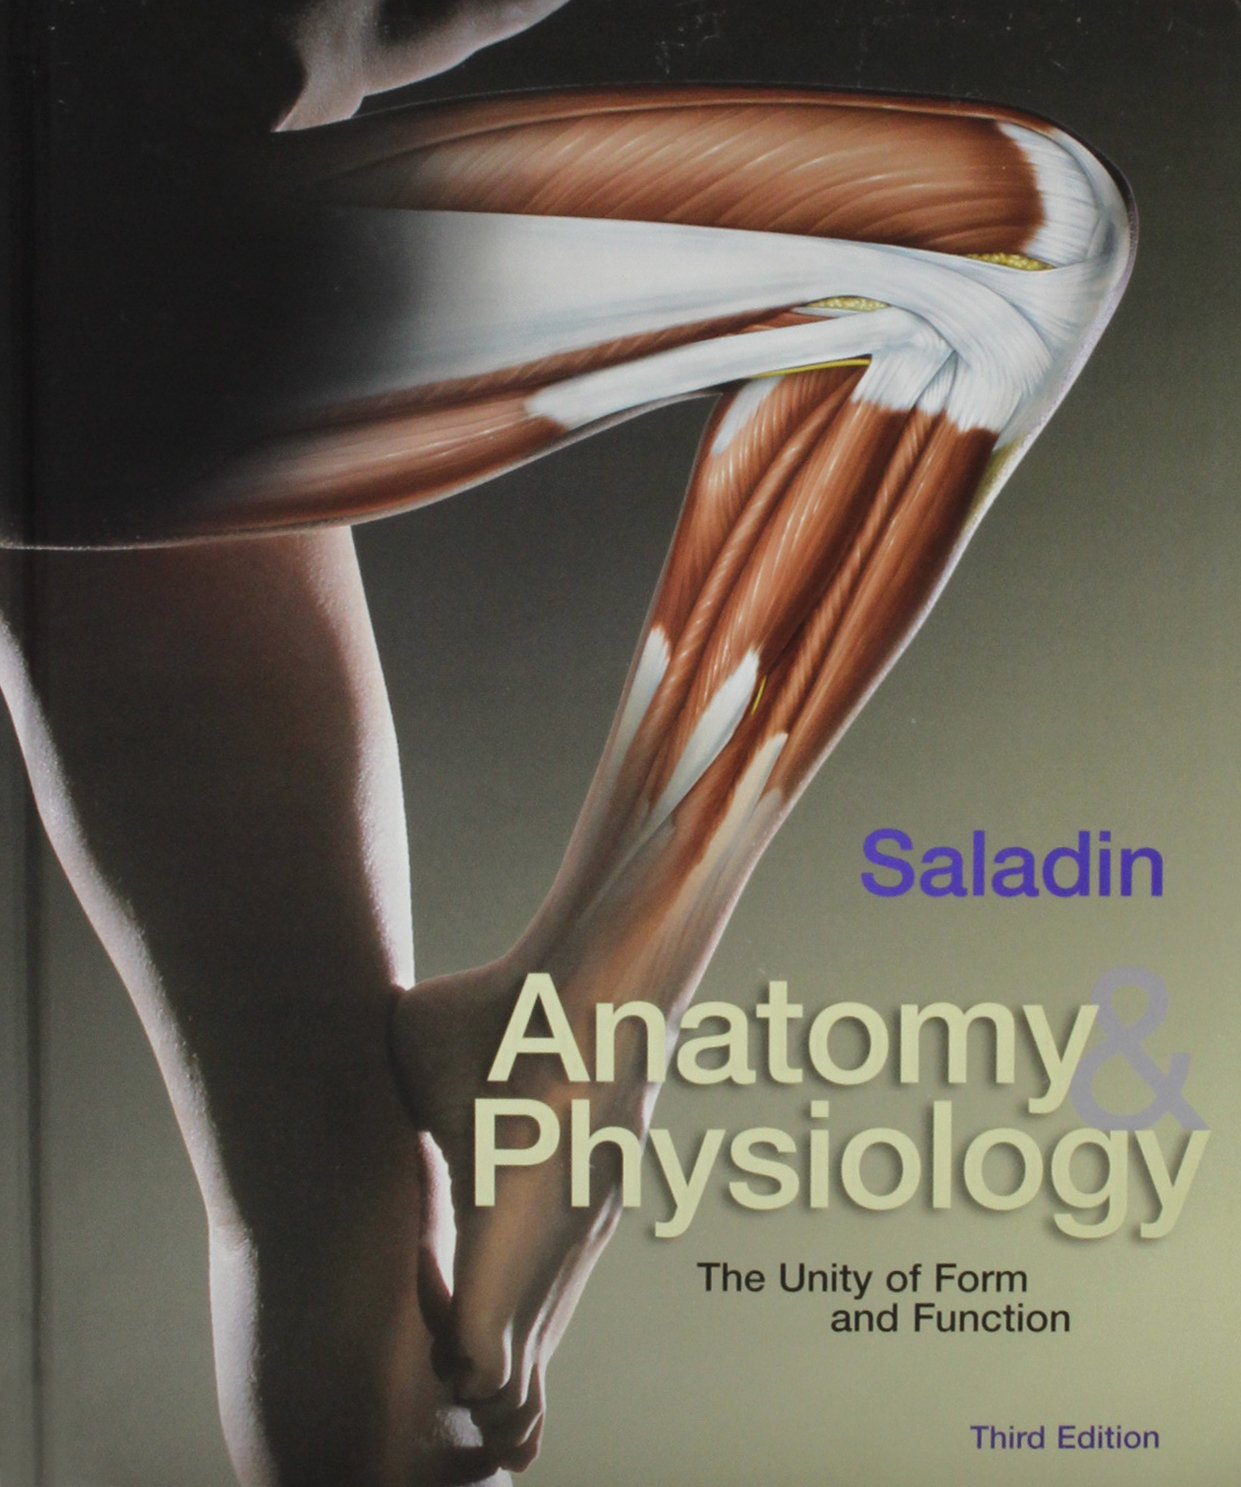 Anatomy and Physiology: The Unity & Form of Function: Amazon.co.uk ...